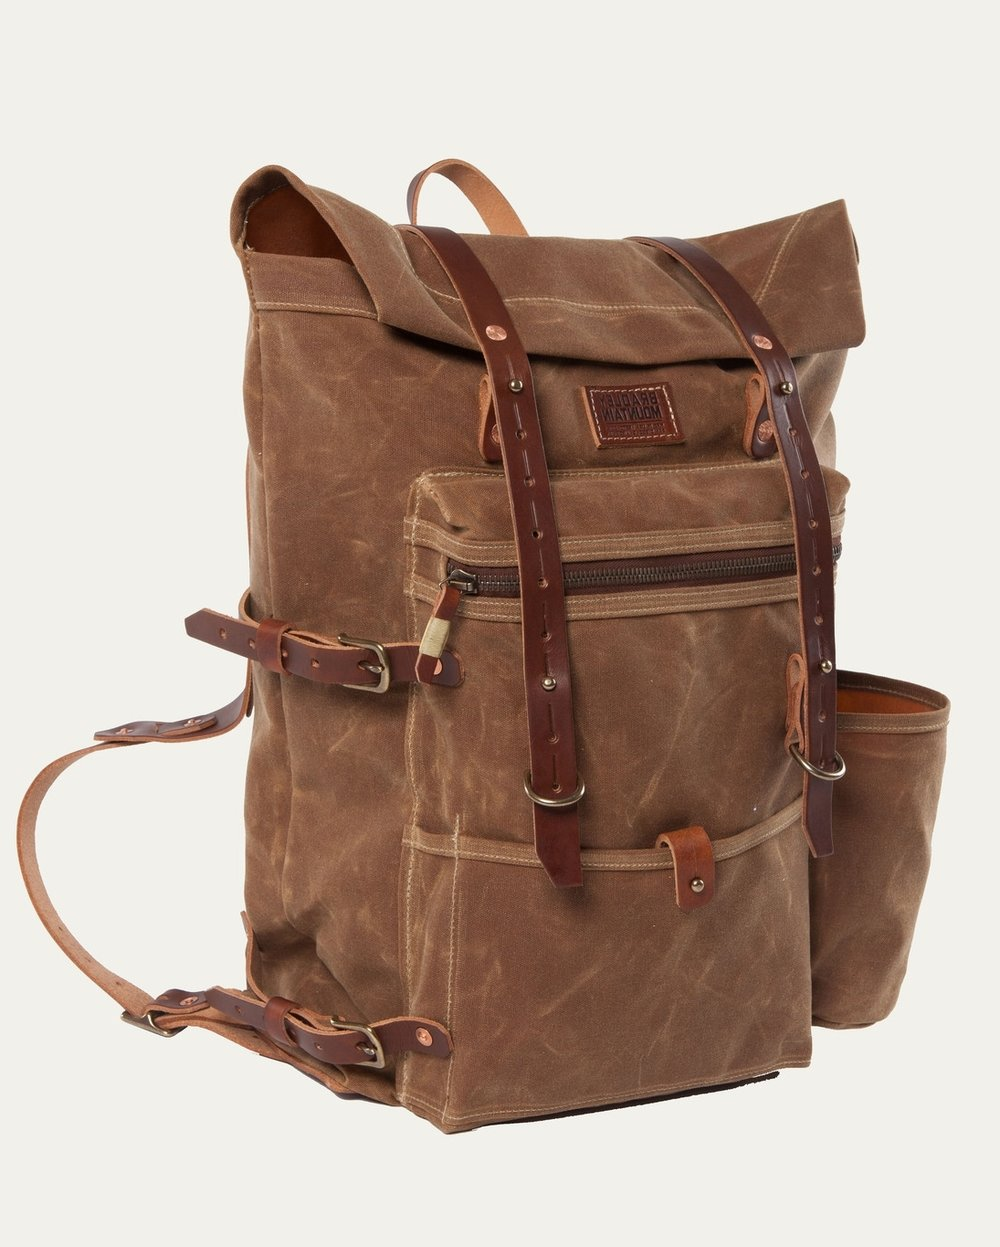 Bradley Mountain Backpack